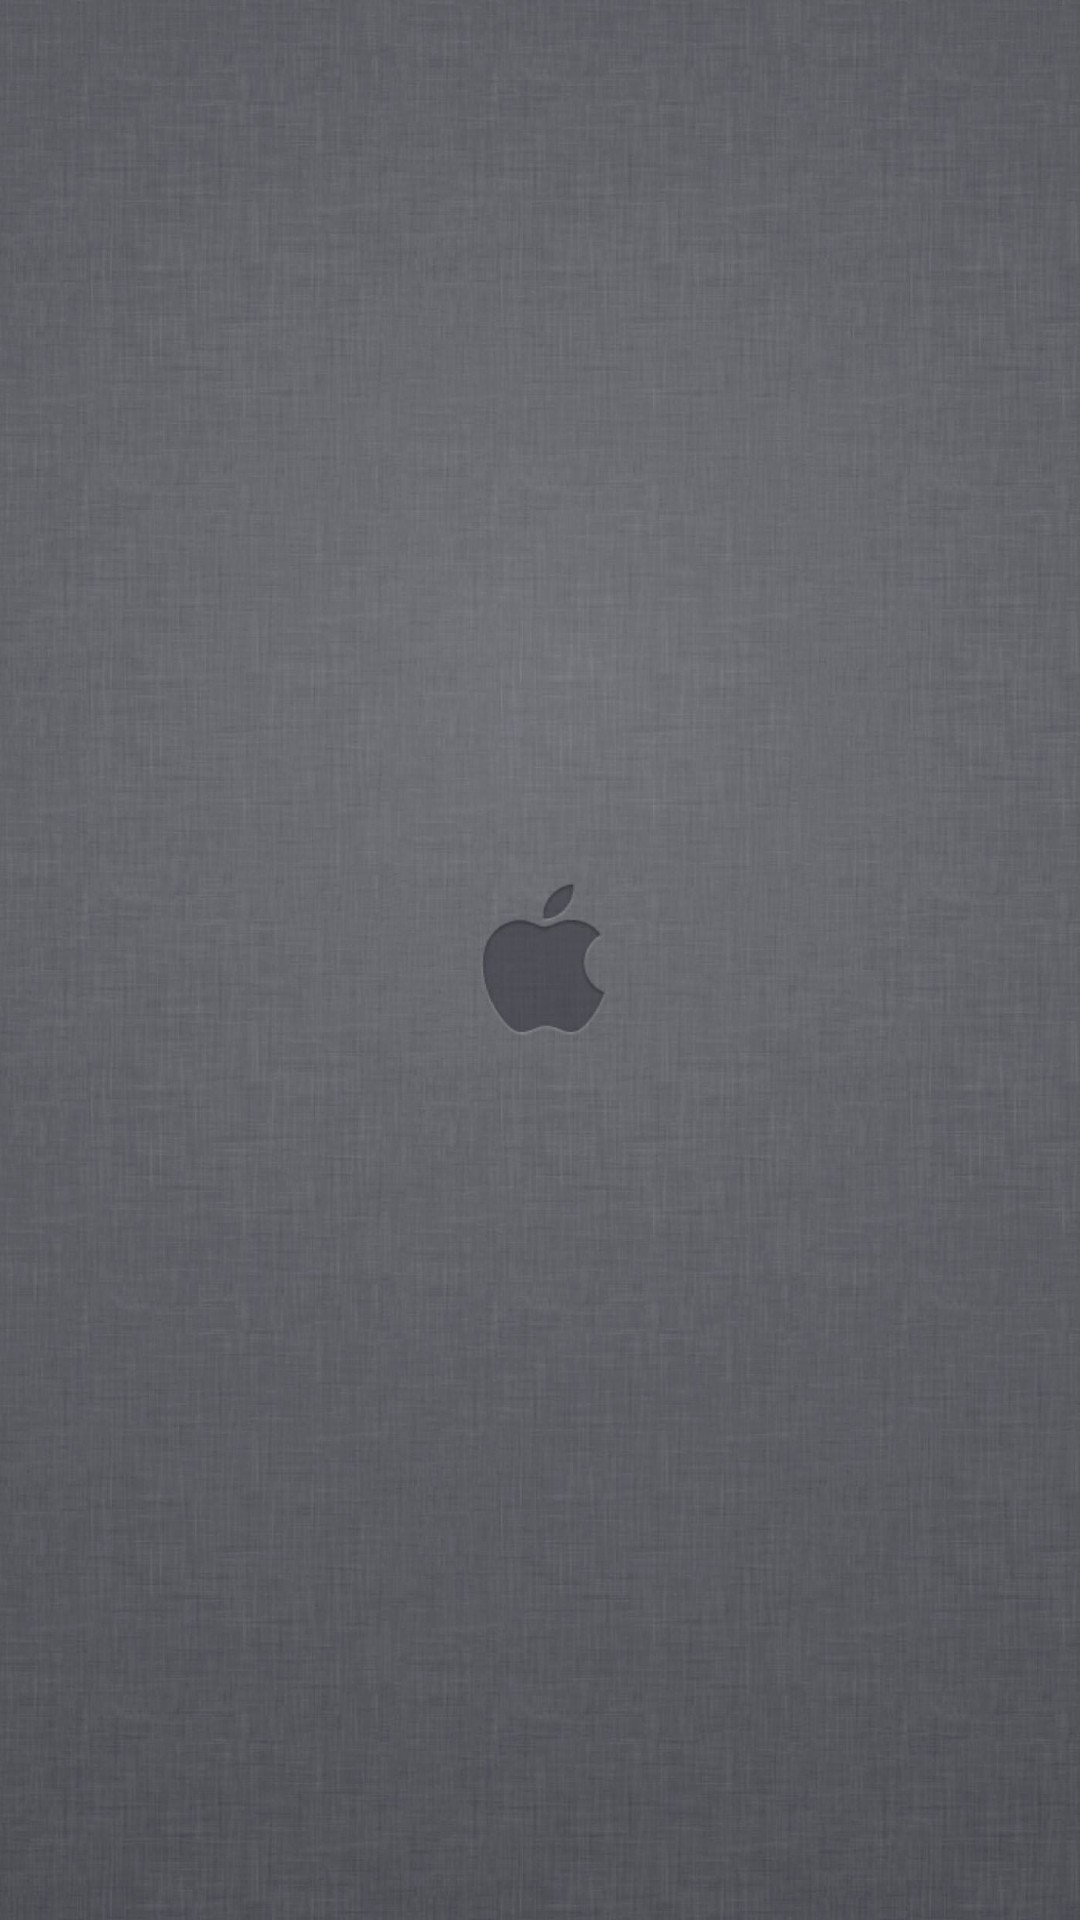 Apple Logo Denim Texture Wallpaper for SONY Xperia Z2